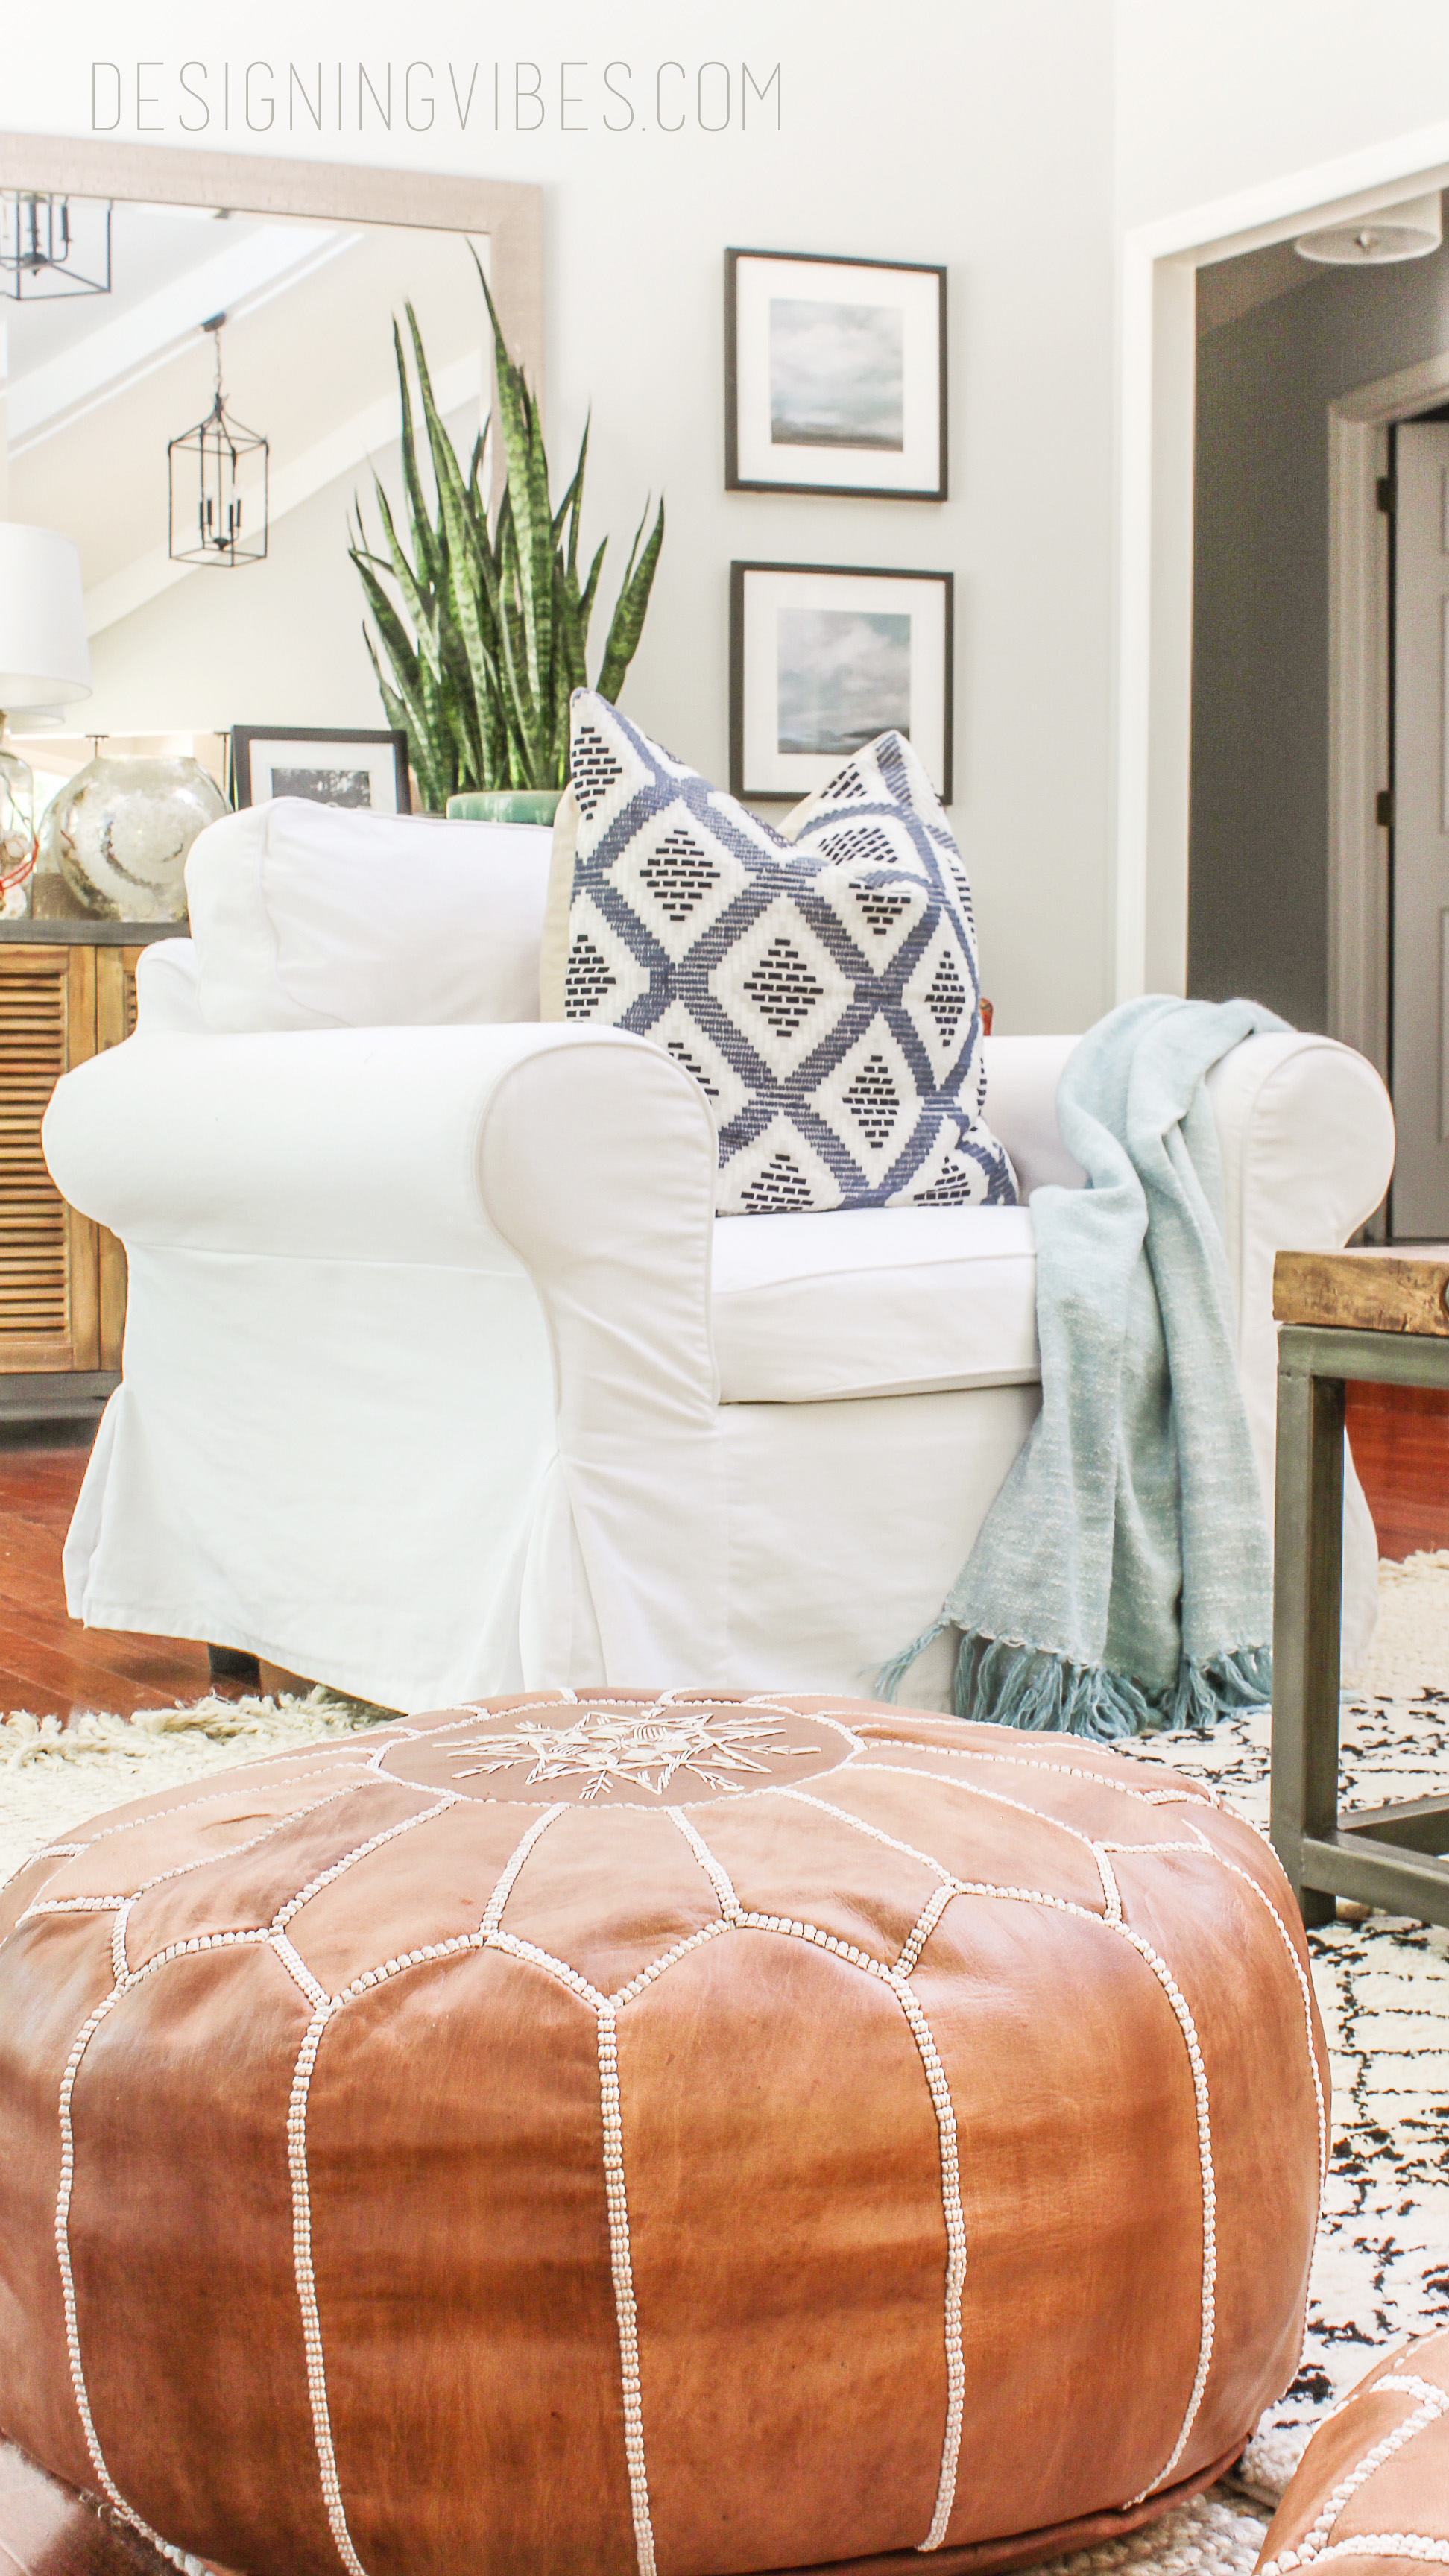 Boho Look How To Buy Leather Moroccan Poufs On The Cheap- Boho